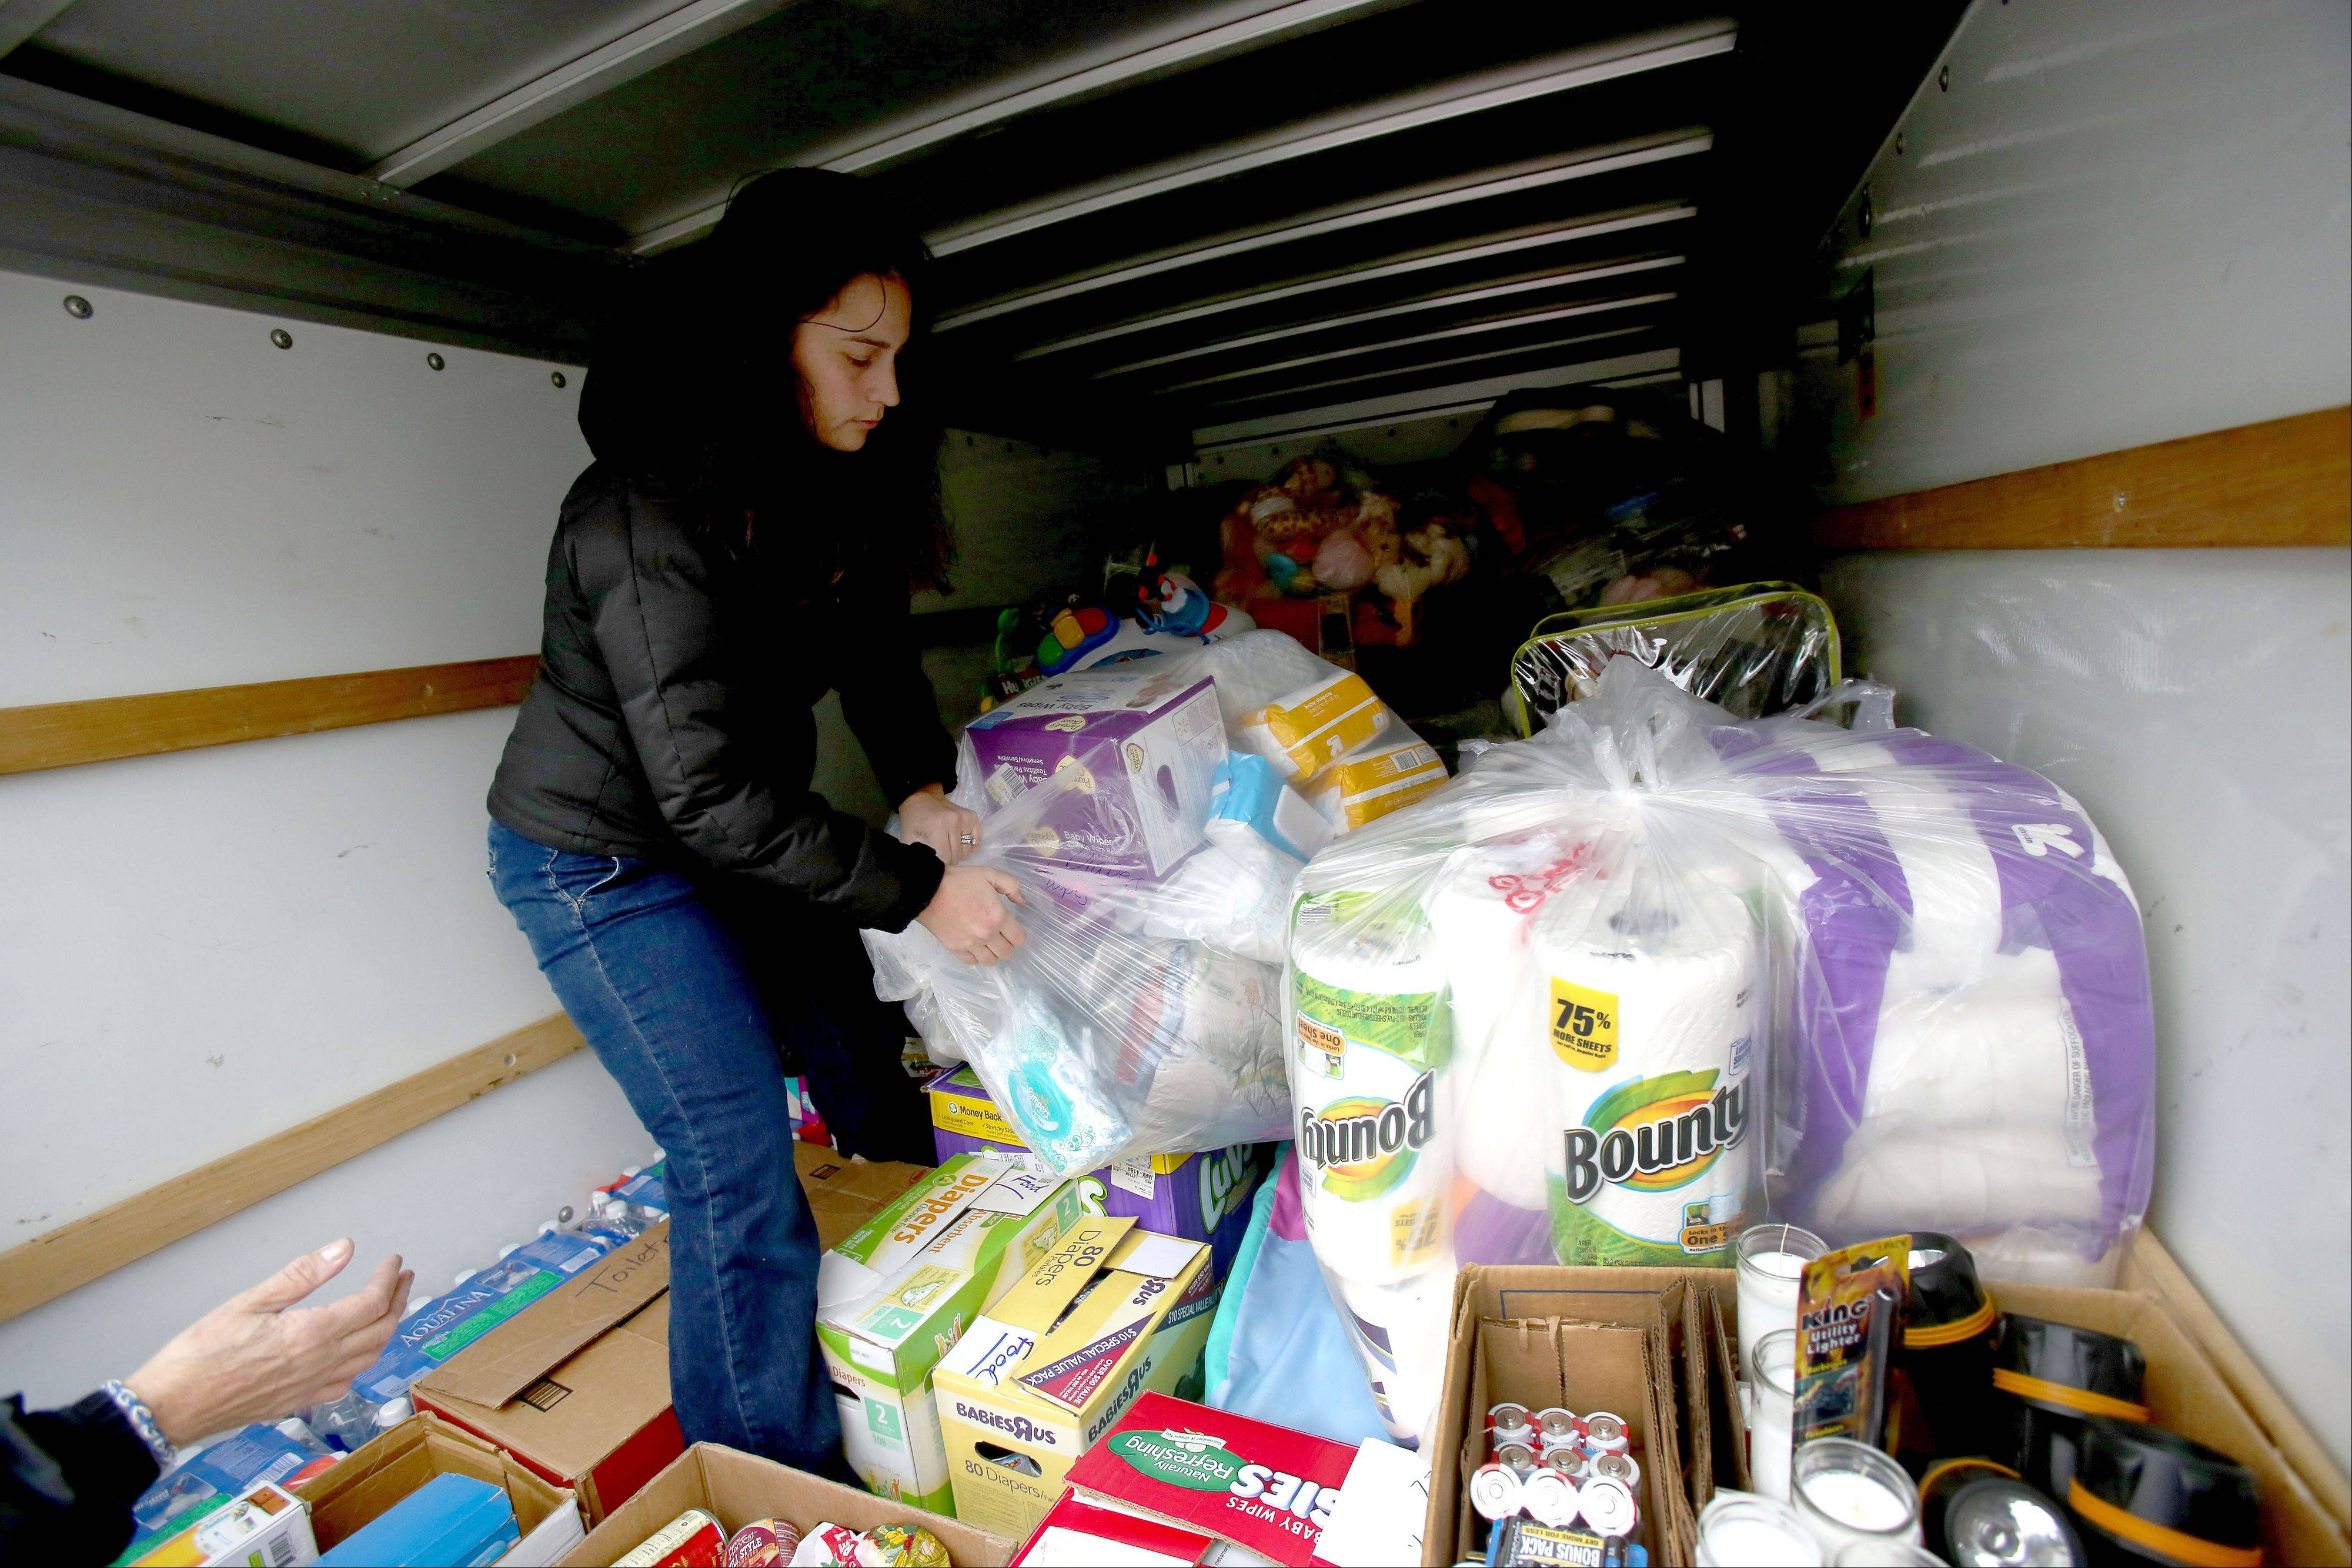 Bev Horne/bhorne@dailyherald.comJennifer Guevara loads up a U-Haul on Thursday in Wheaton of donated items to take to the victims of the tornado in Coal City. She gathered donations after she posted on Wheaton, Illinois Parents Facebook page.